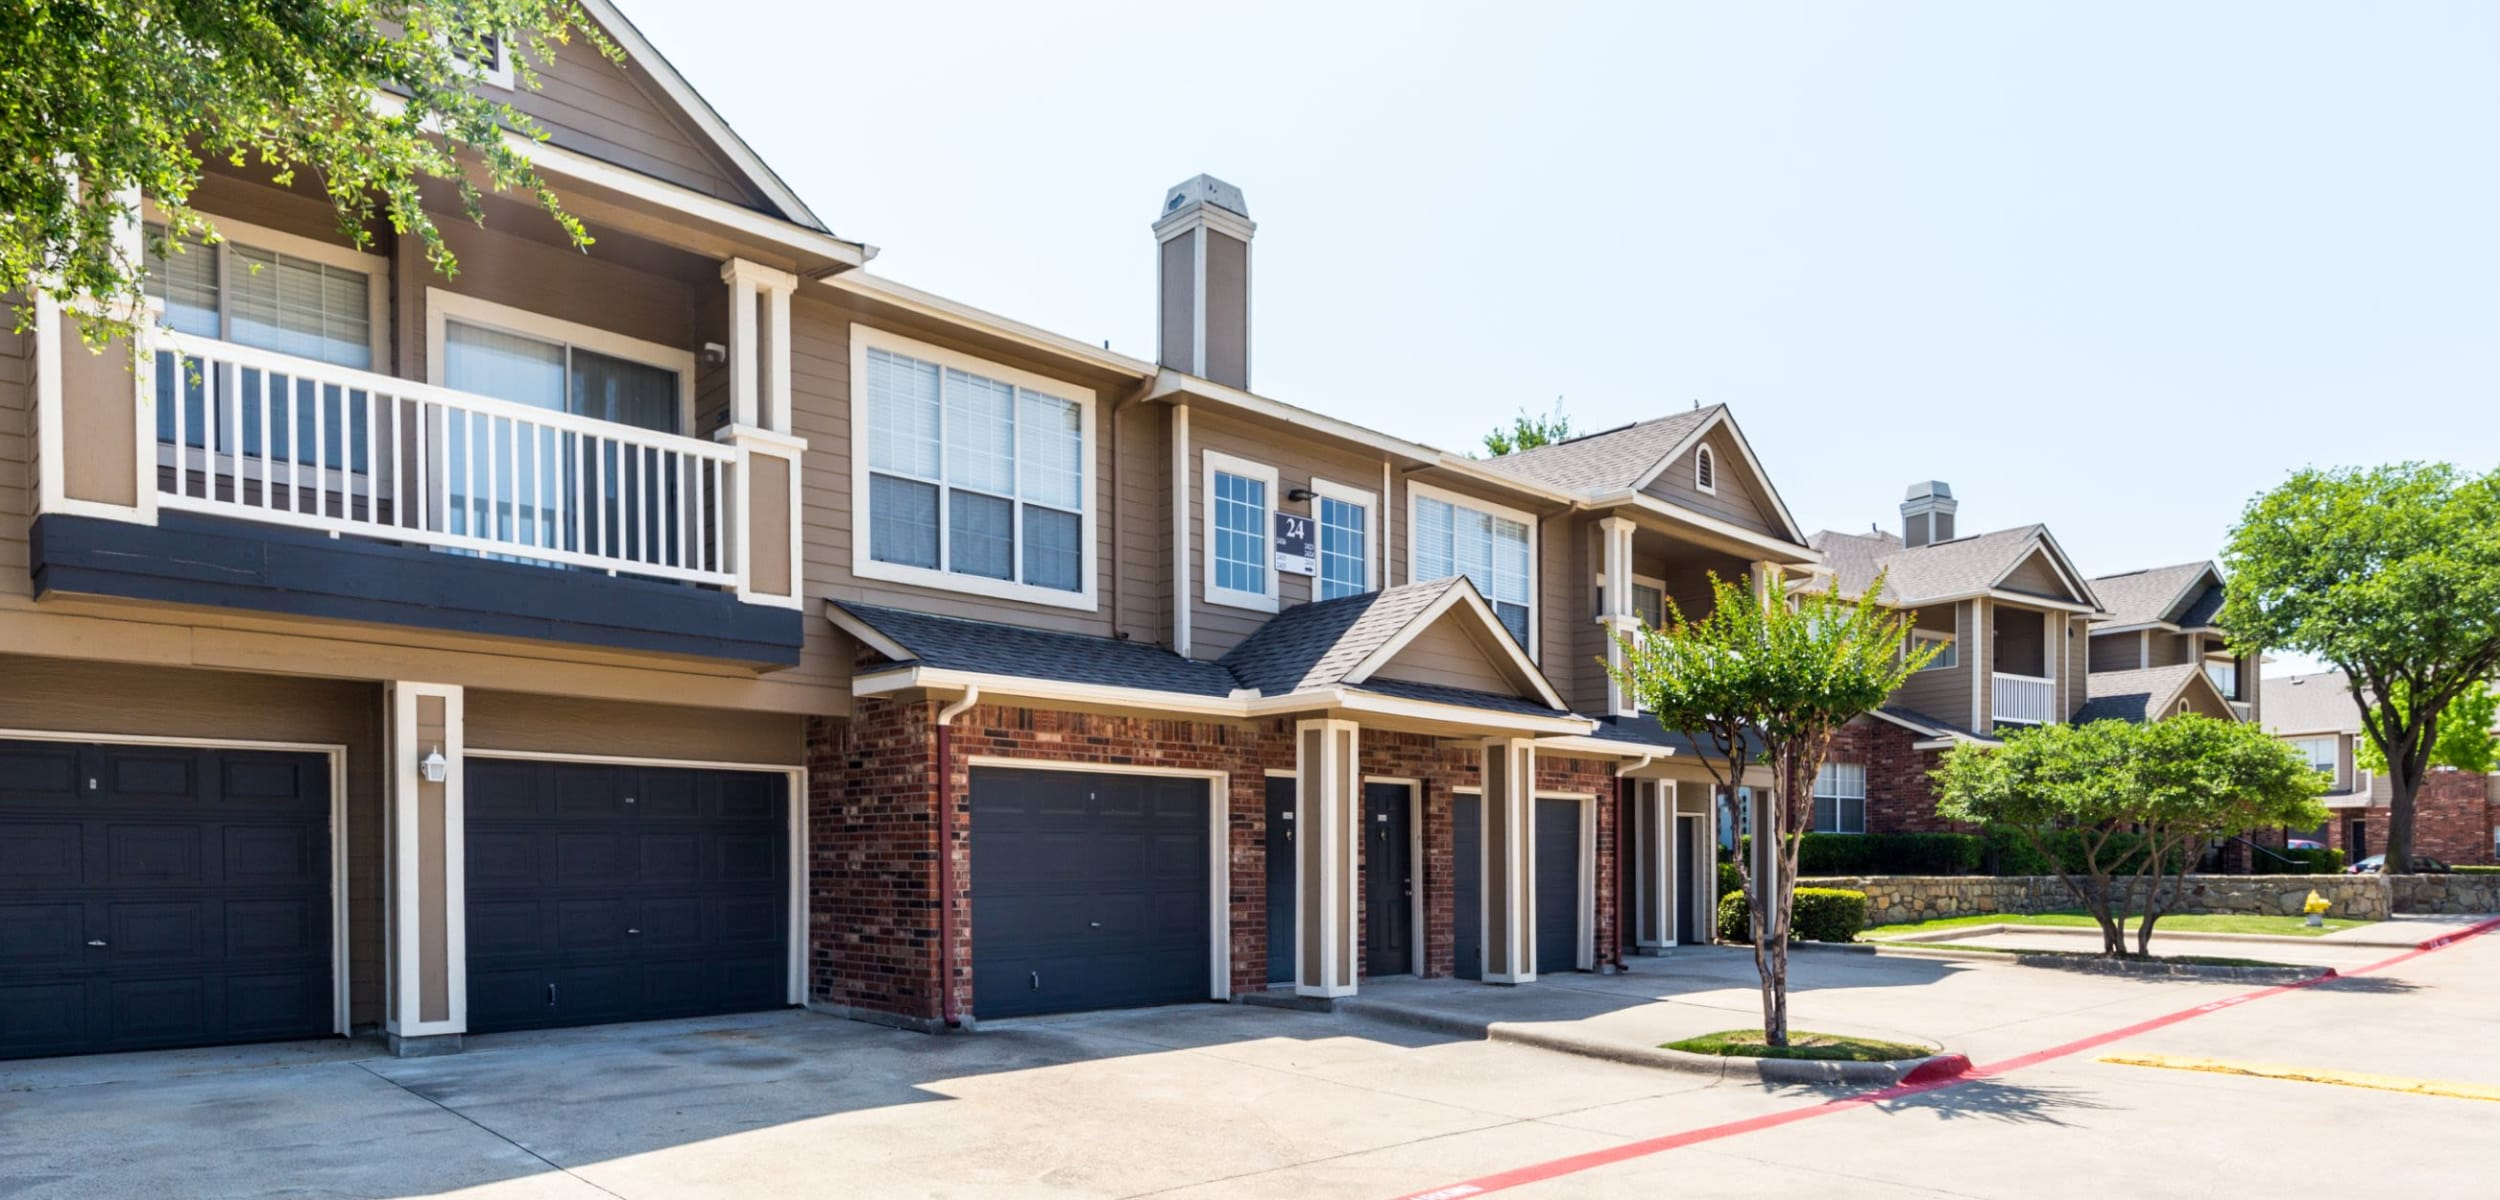 Exterior apartment with garage Marquis at Stonebriar in Frisco, Texas